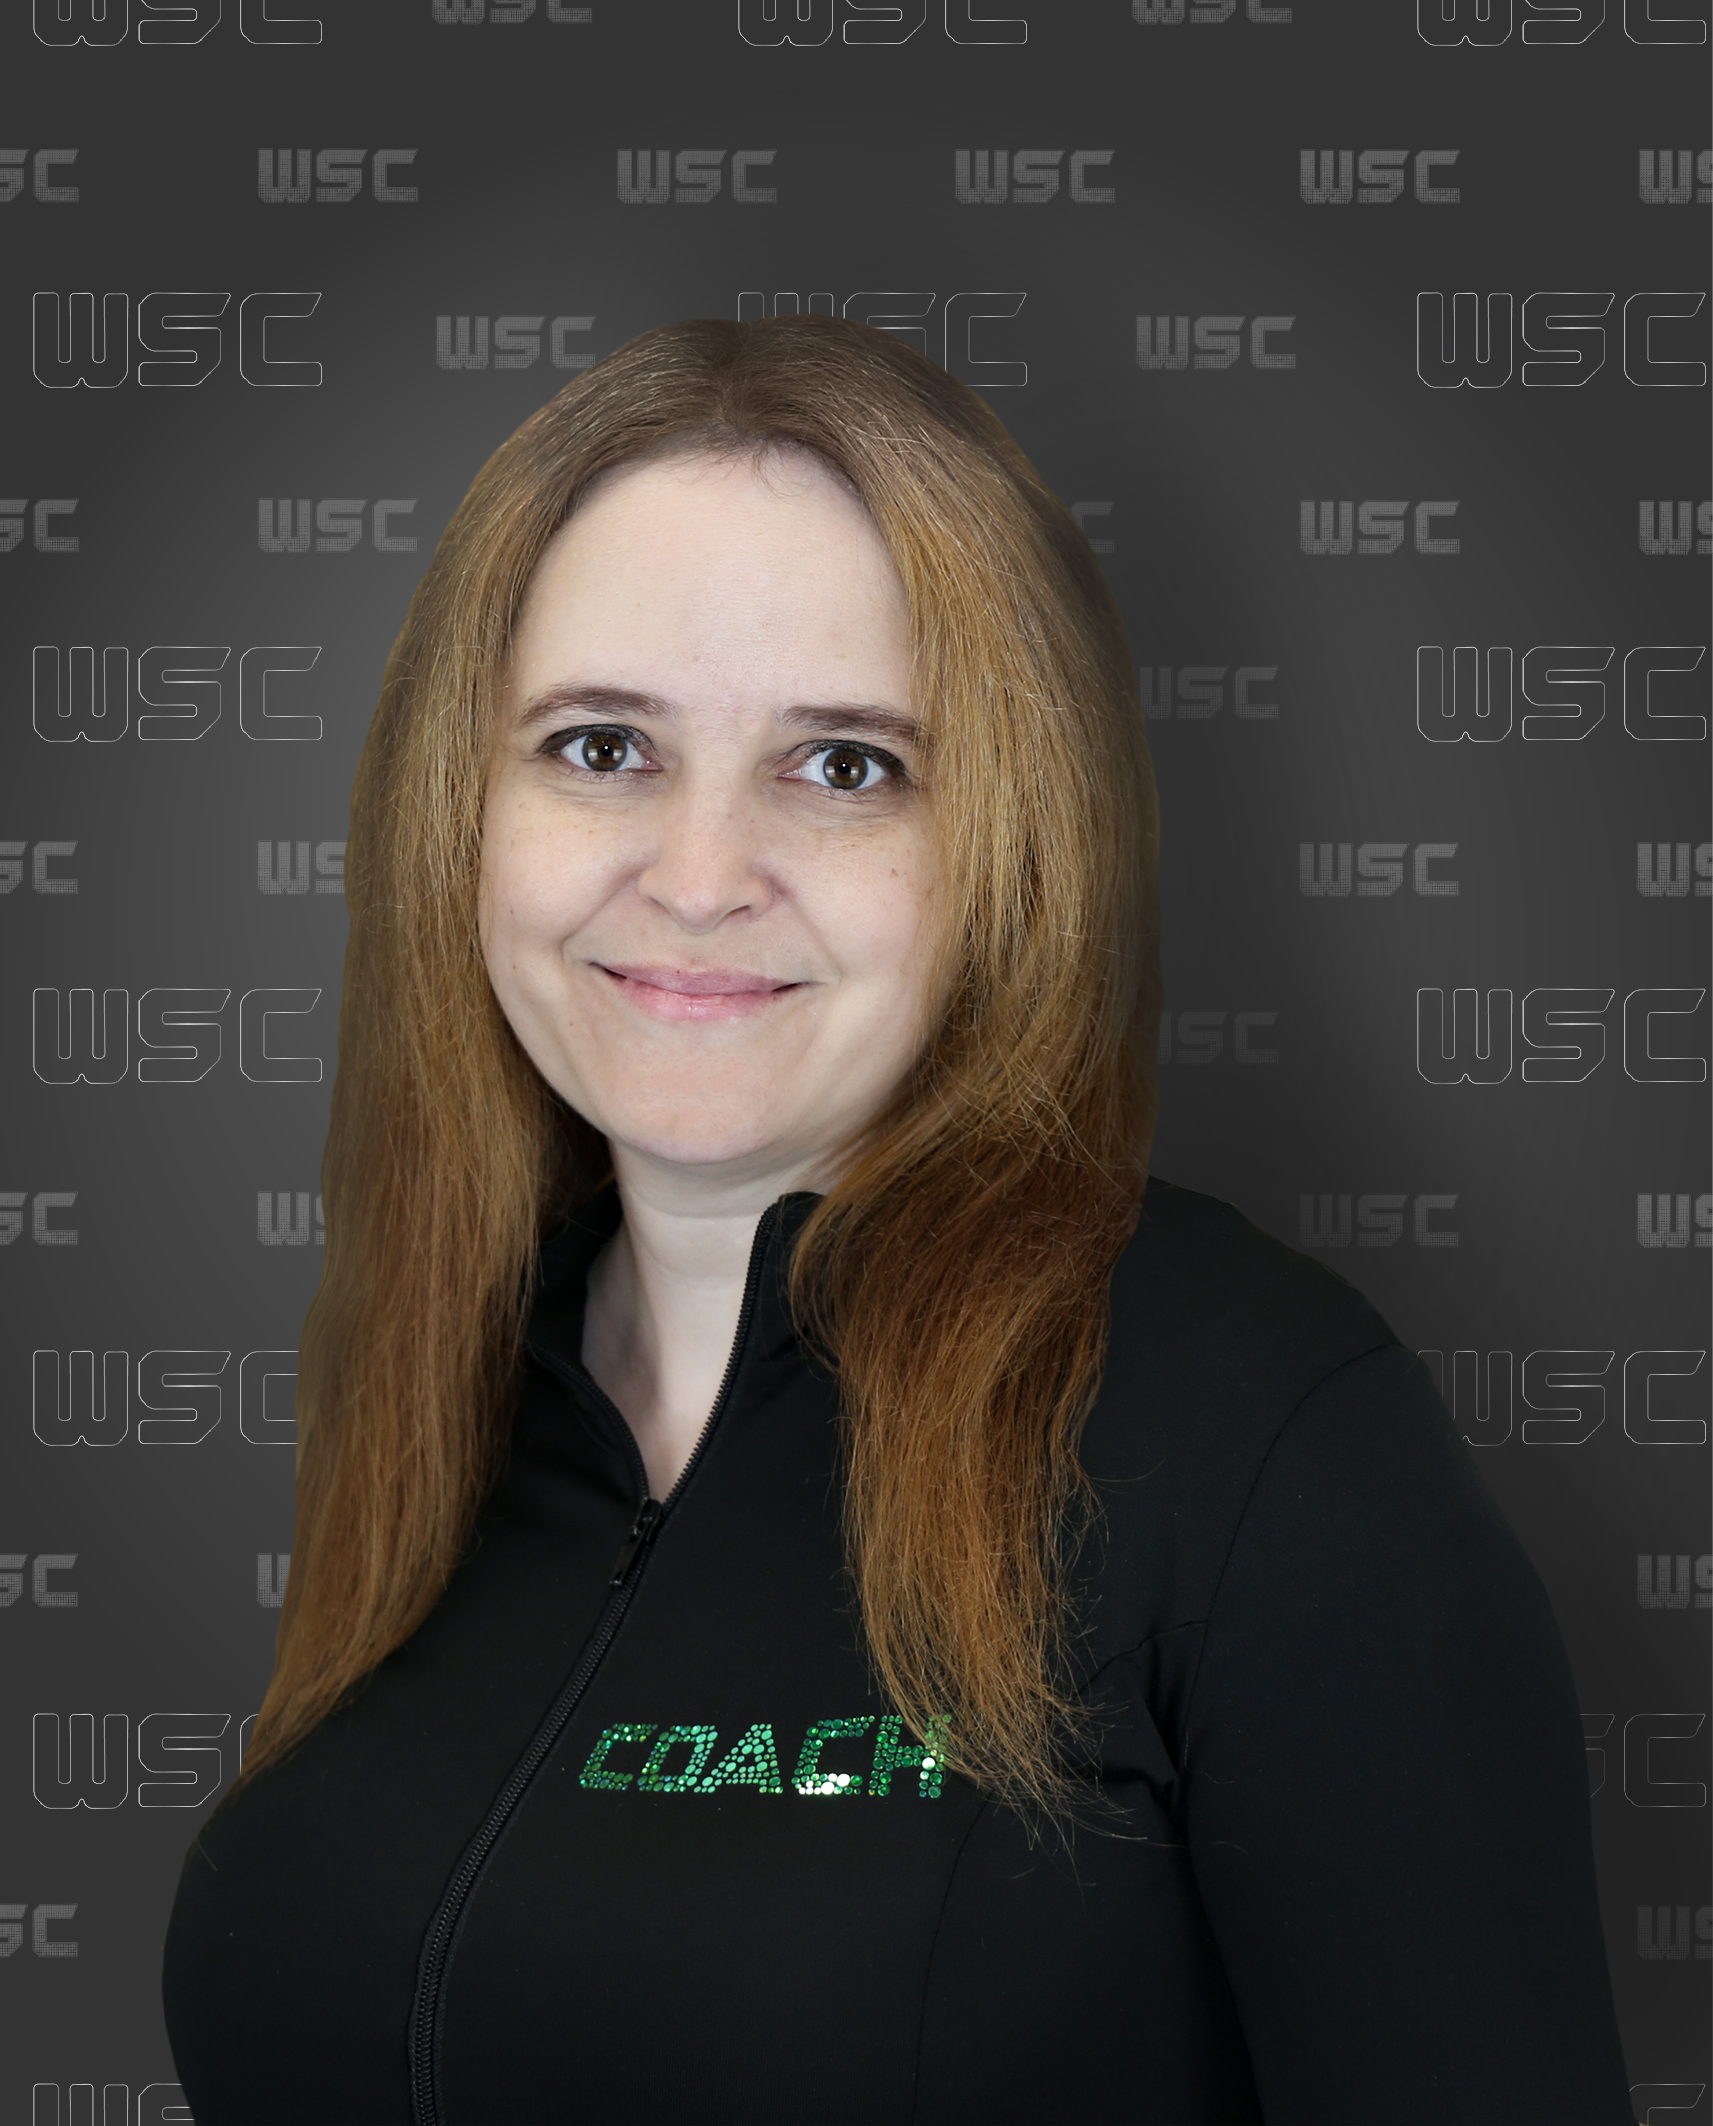 WSC Coaching Staff: Iris Brendt